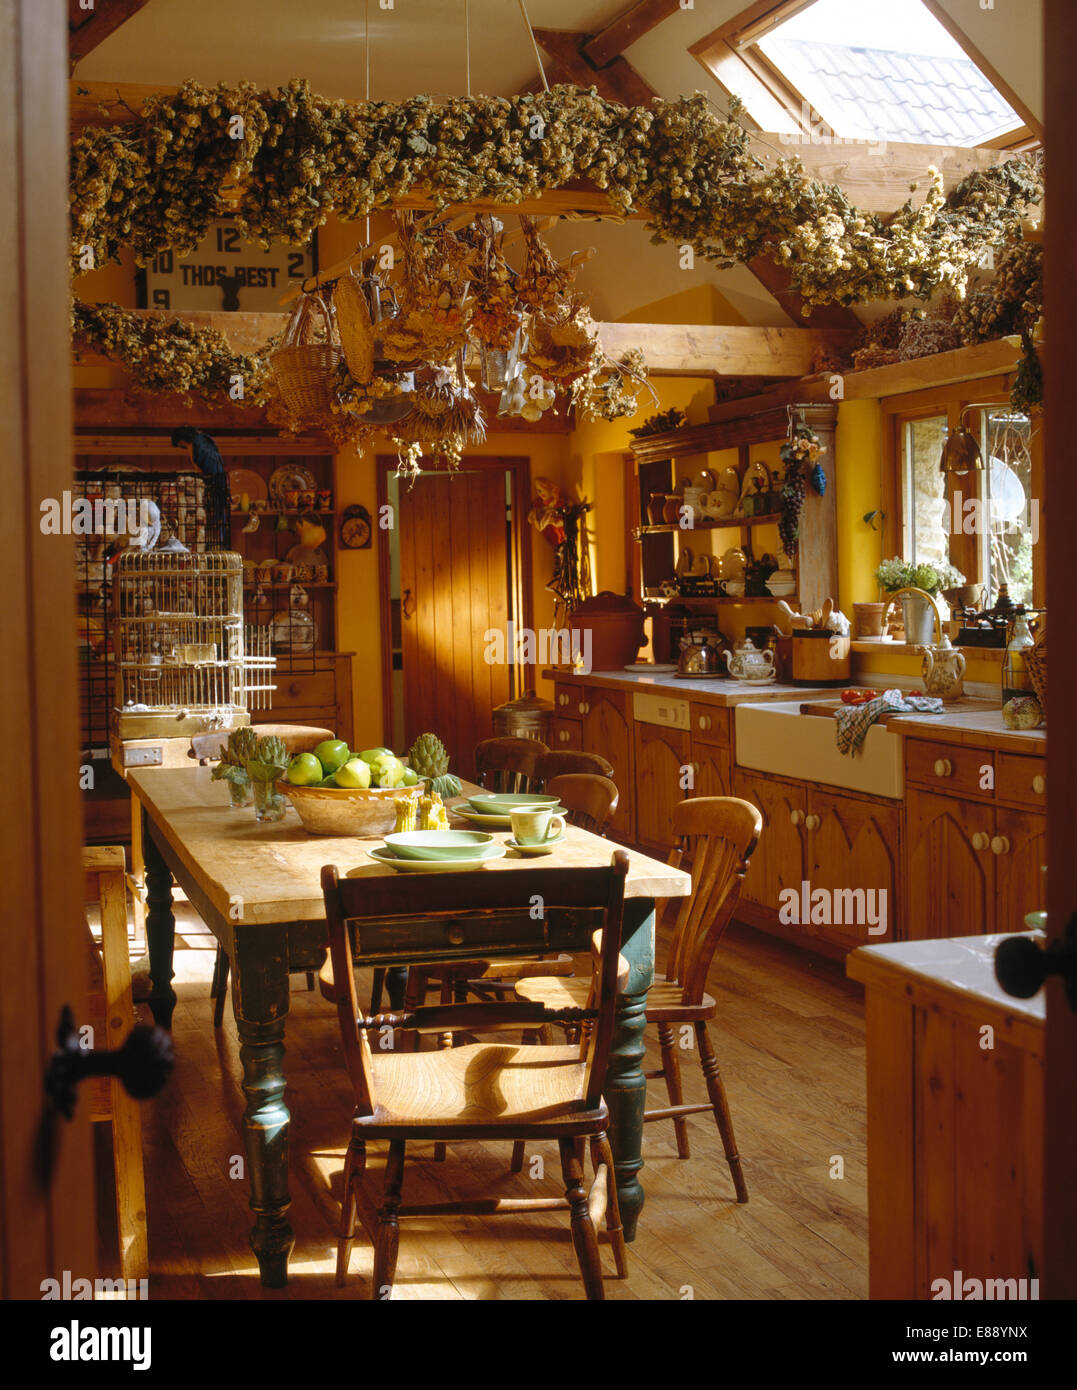 old pine table and chairs in country kitchen with hop bine garland